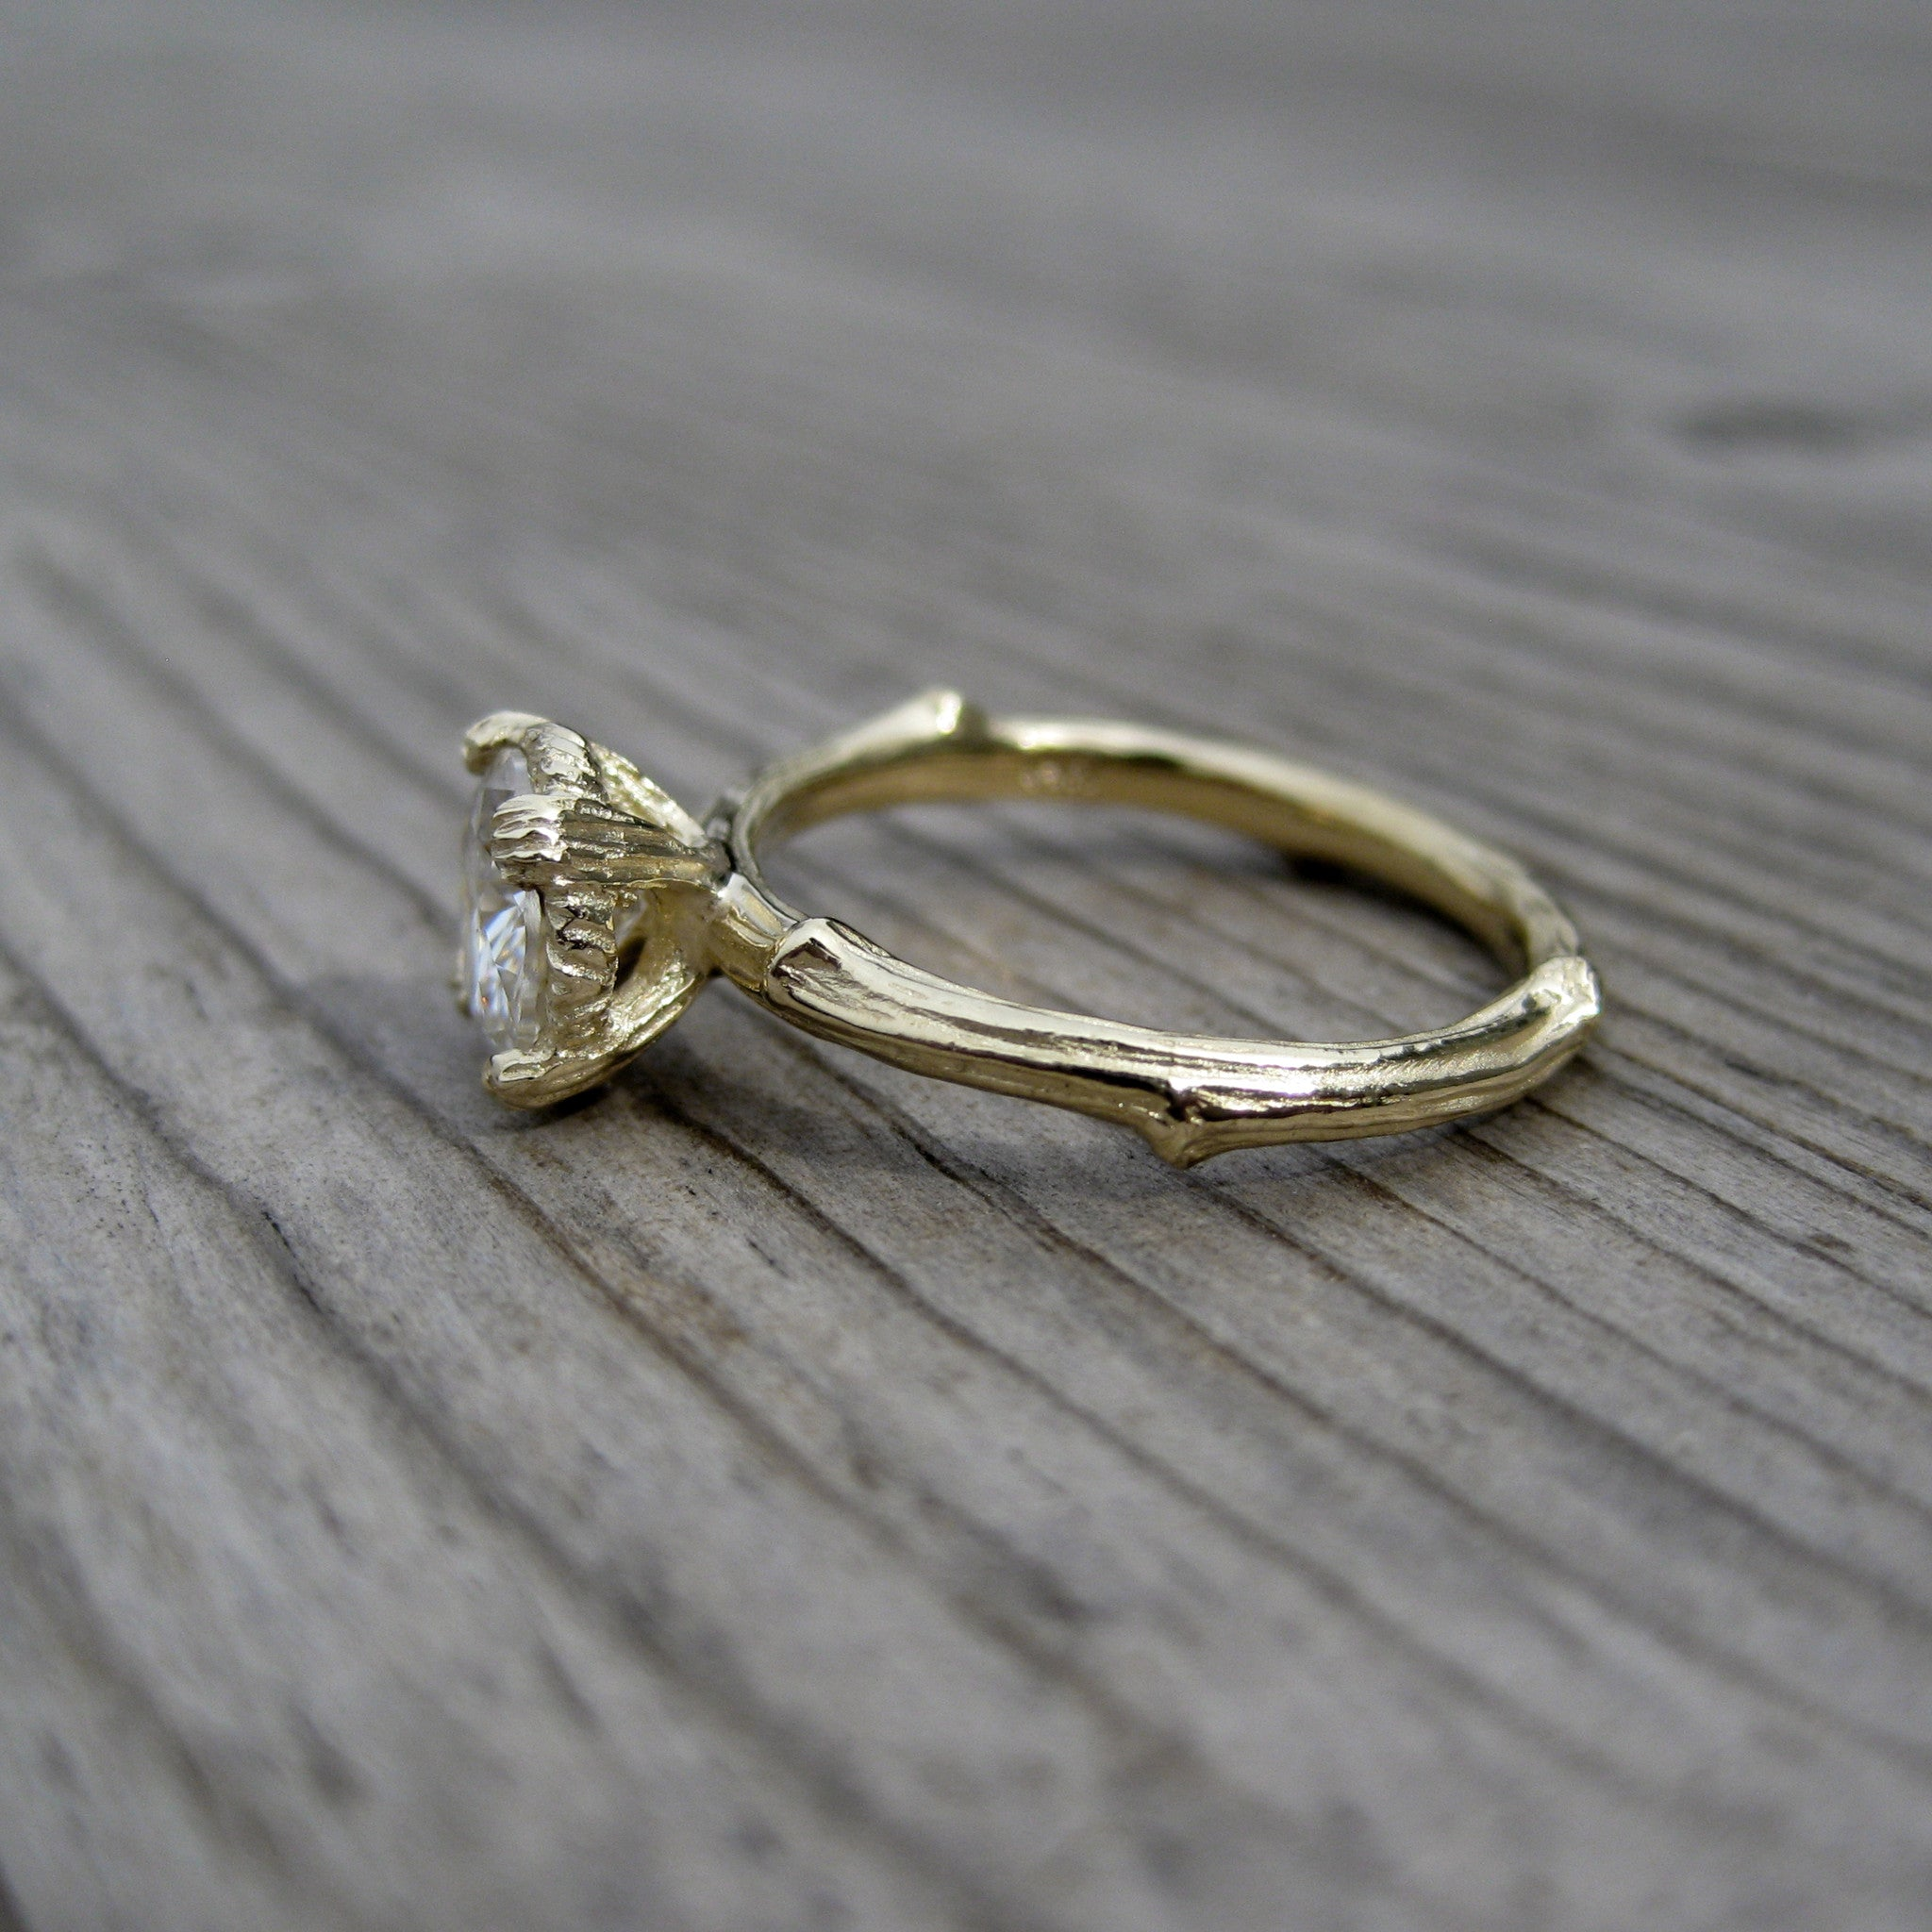 pave and gold set band prongs rings wedding custom tulip diamonds white engagement micro karat new prong jersey mounting with